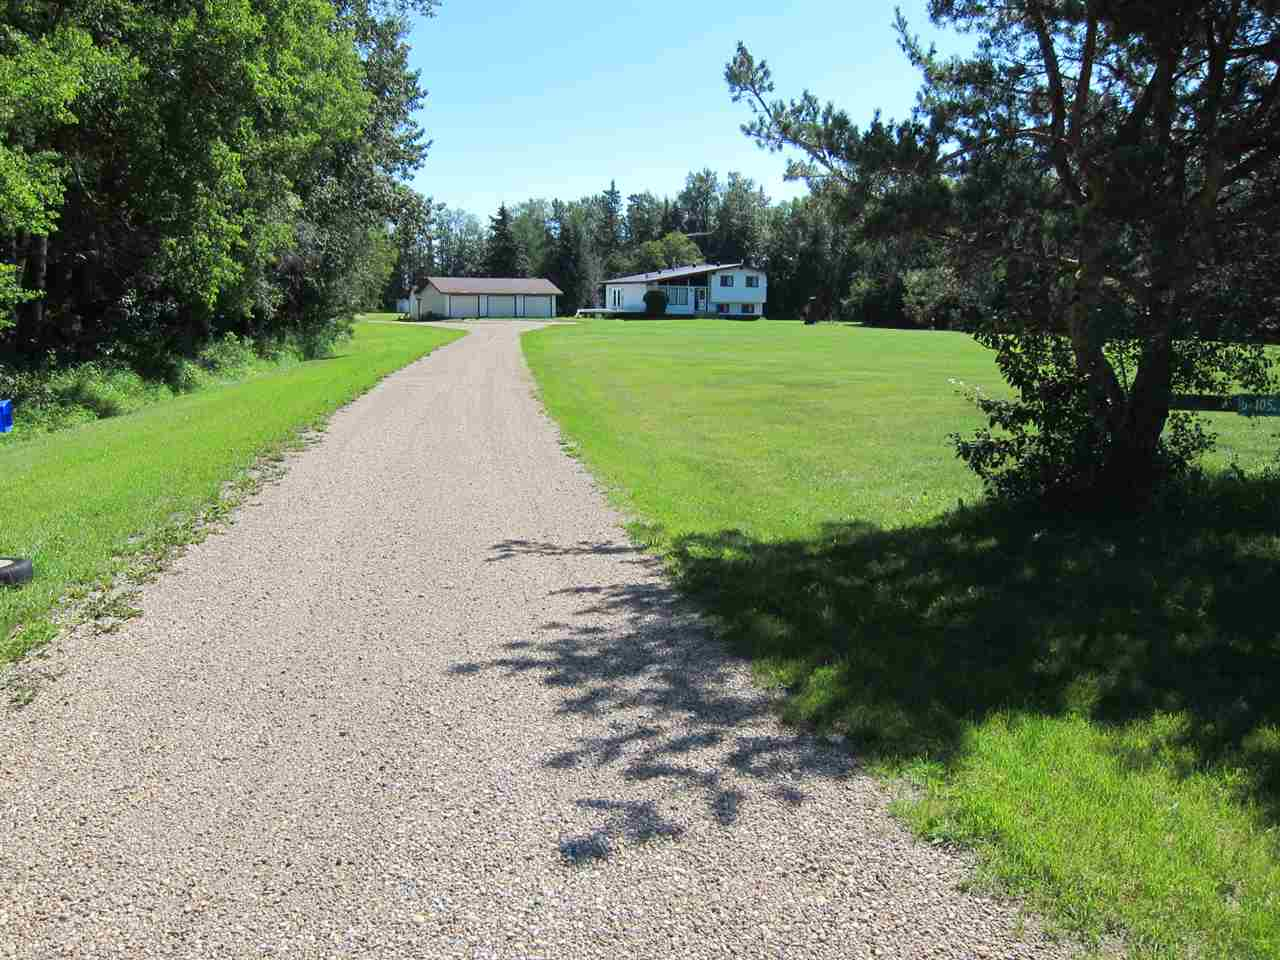 MLS® listing #E4148488 for sale located at 51405 Rge Rd 10